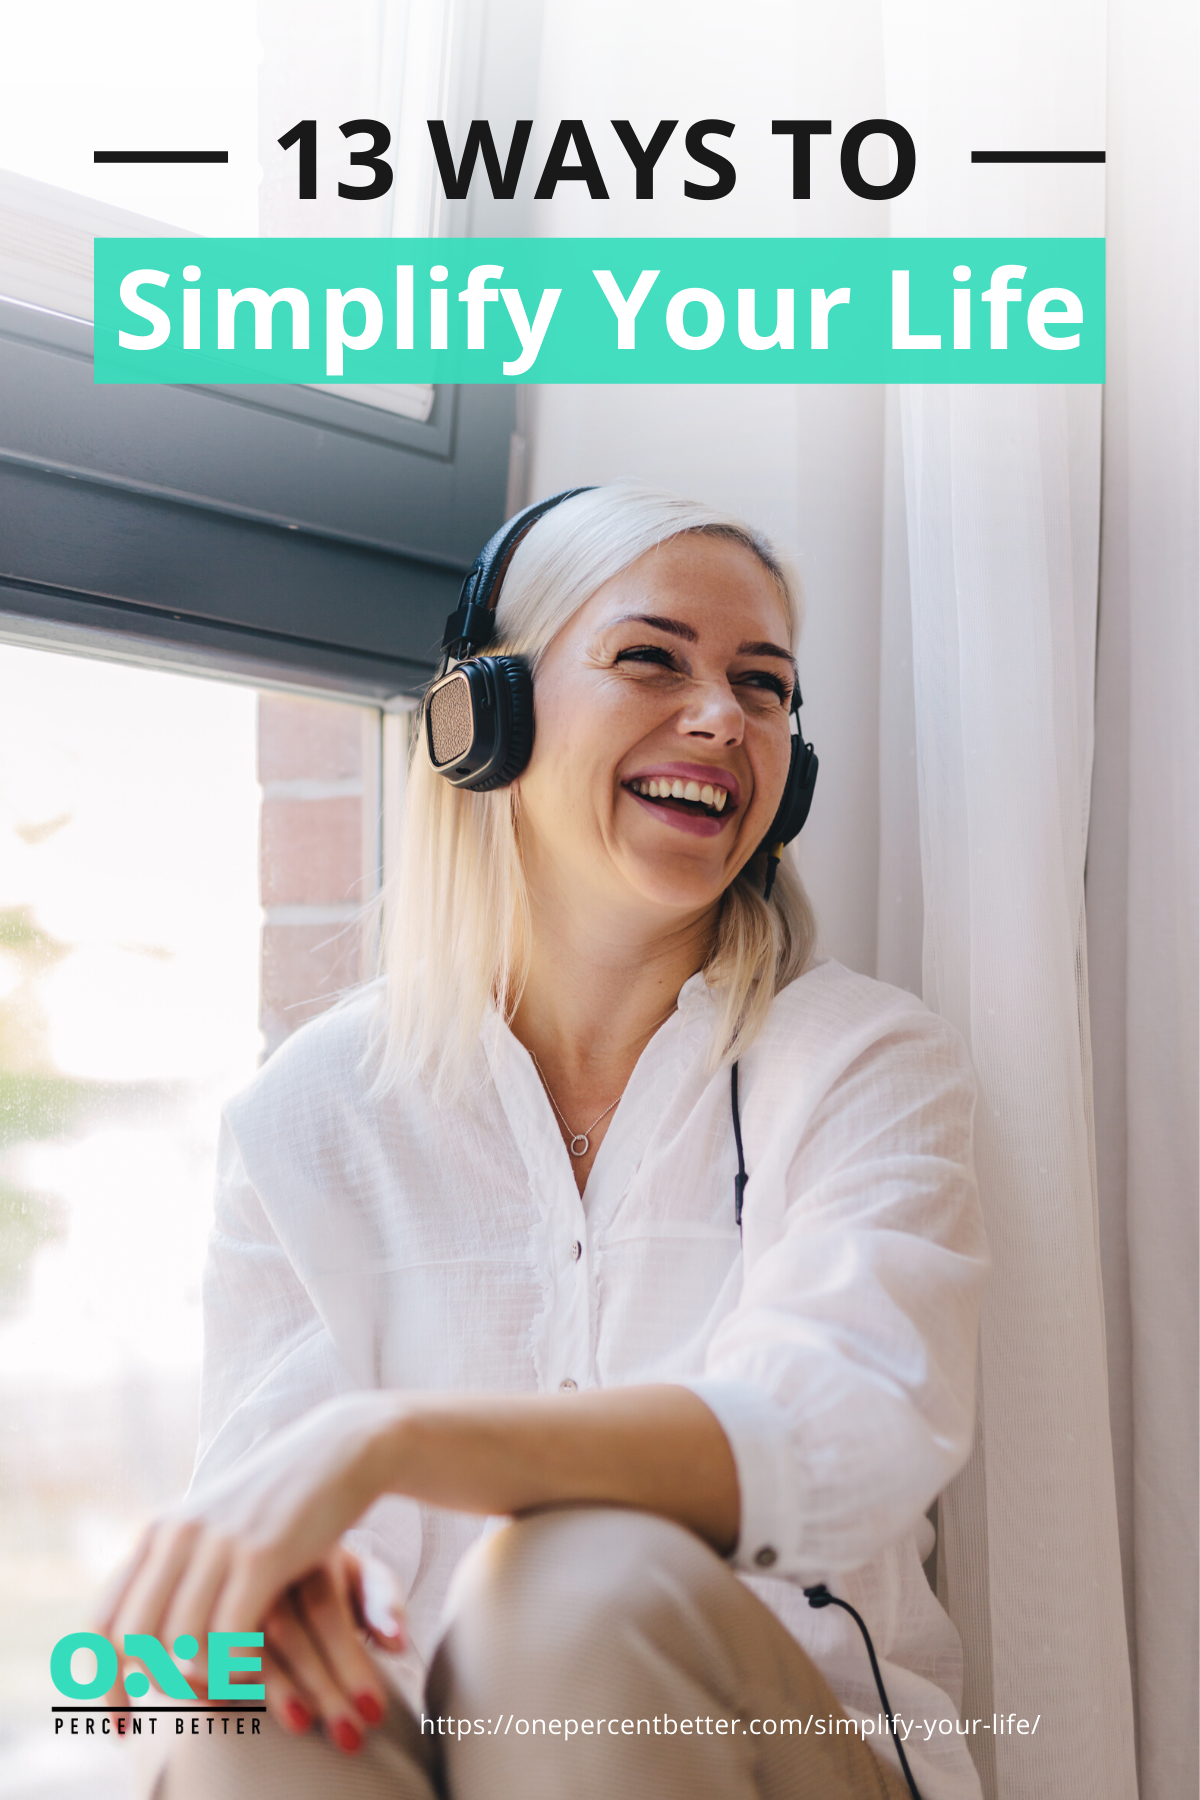 13 Ways To Simplify Your Life https://onepercentbetter.com/simplify-your-life/